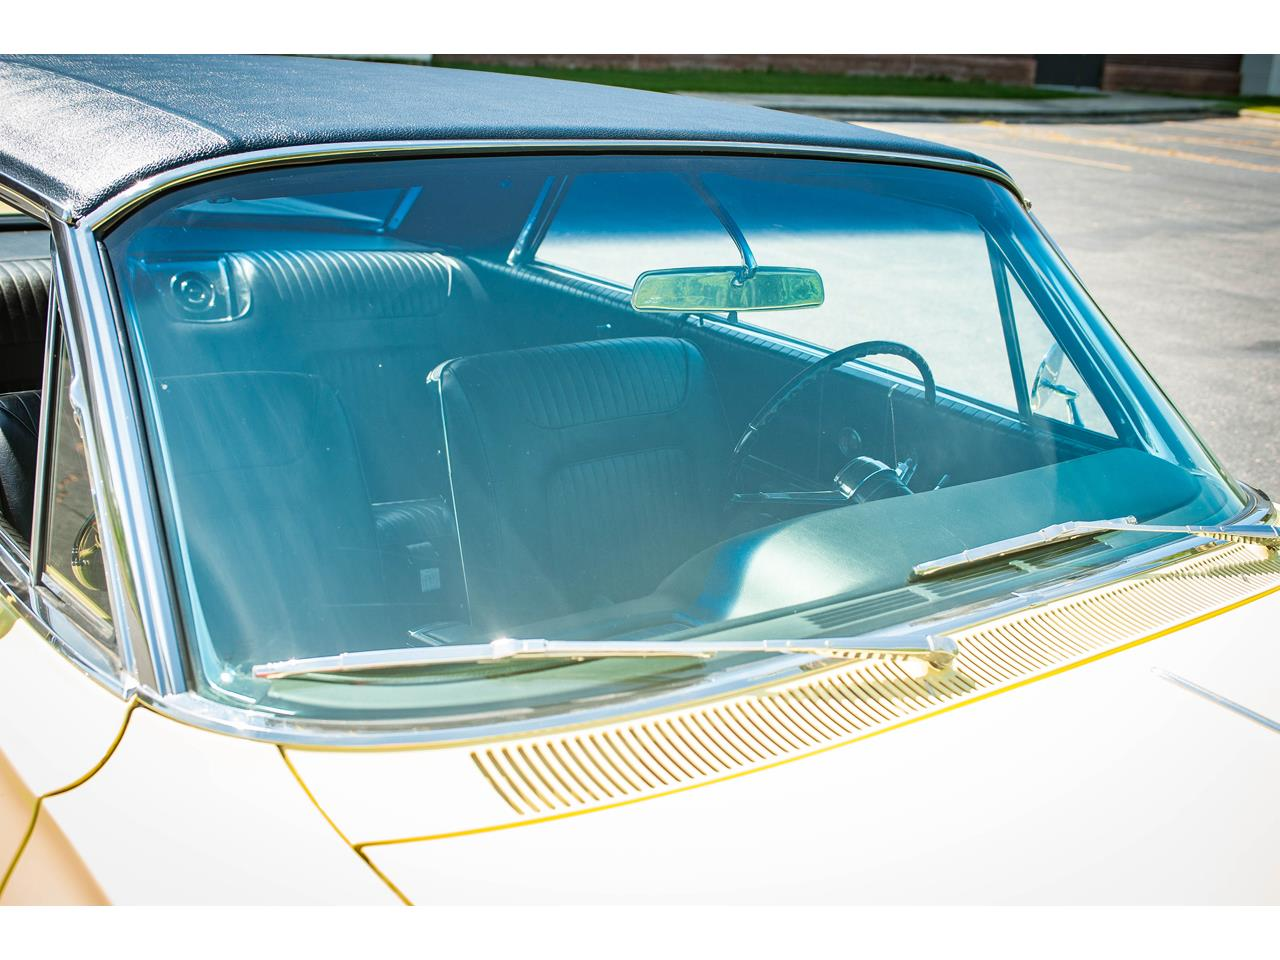 Large Picture of '64 Chevrolet Impala - $45,000.00 Offered by Gateway Classic Cars - St. Louis - QRDR